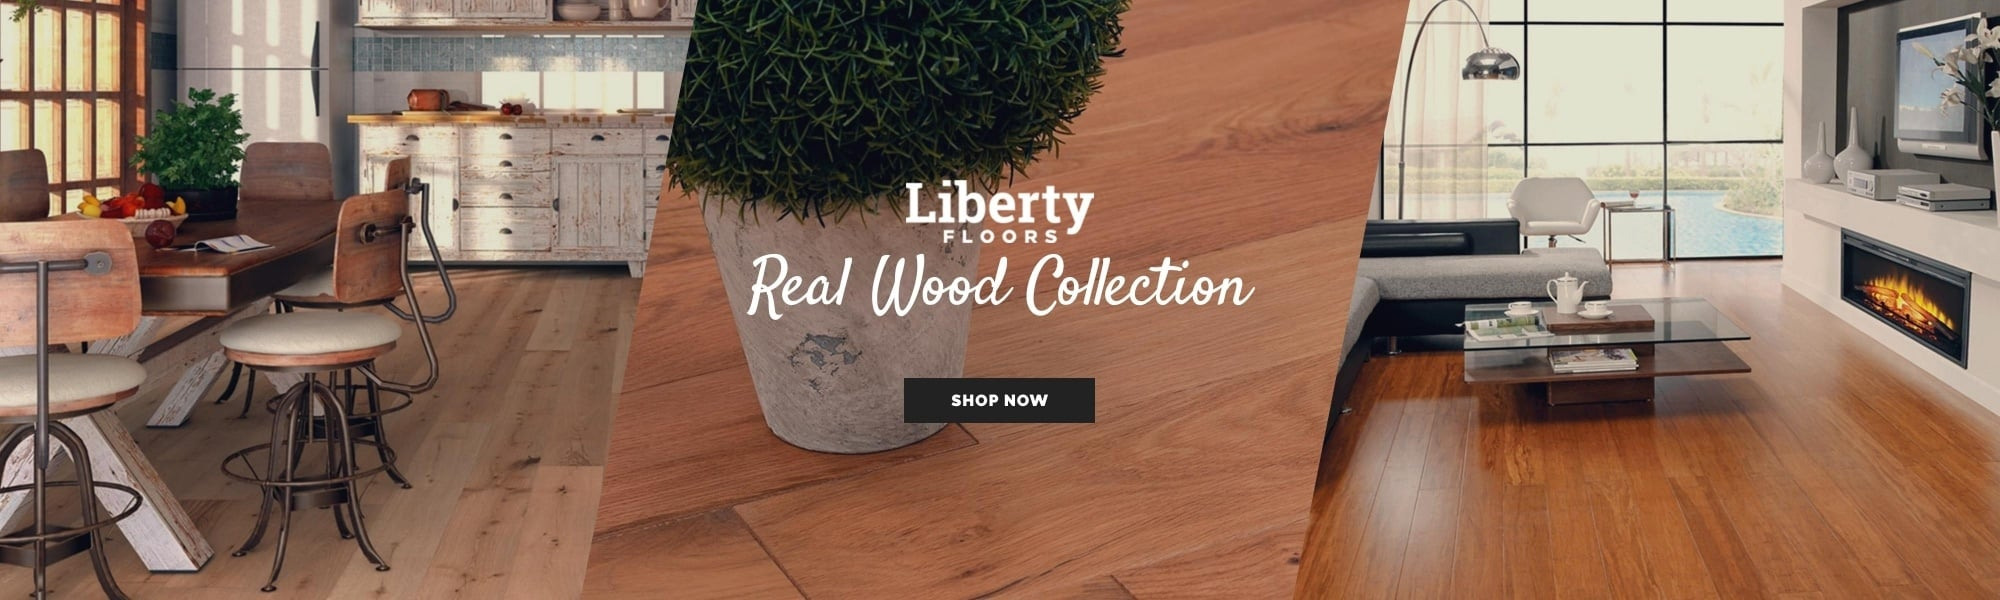 Liberty Real Wood Collection